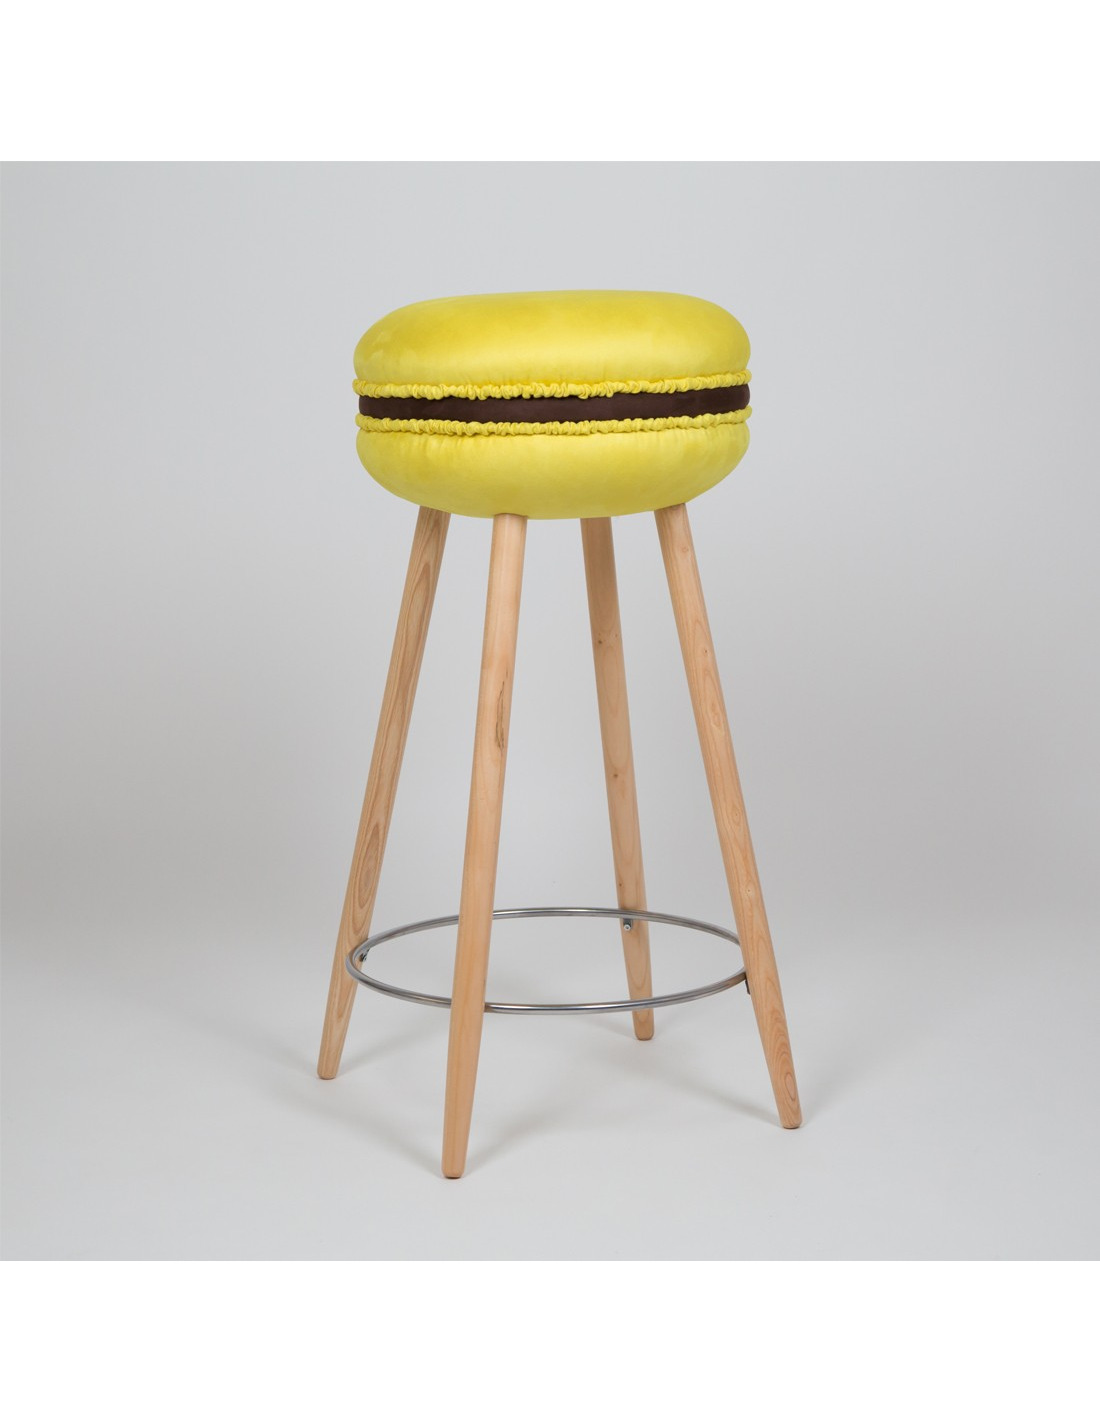 tabouret de bar original makastool l jaune marron en forme. Black Bedroom Furniture Sets. Home Design Ideas